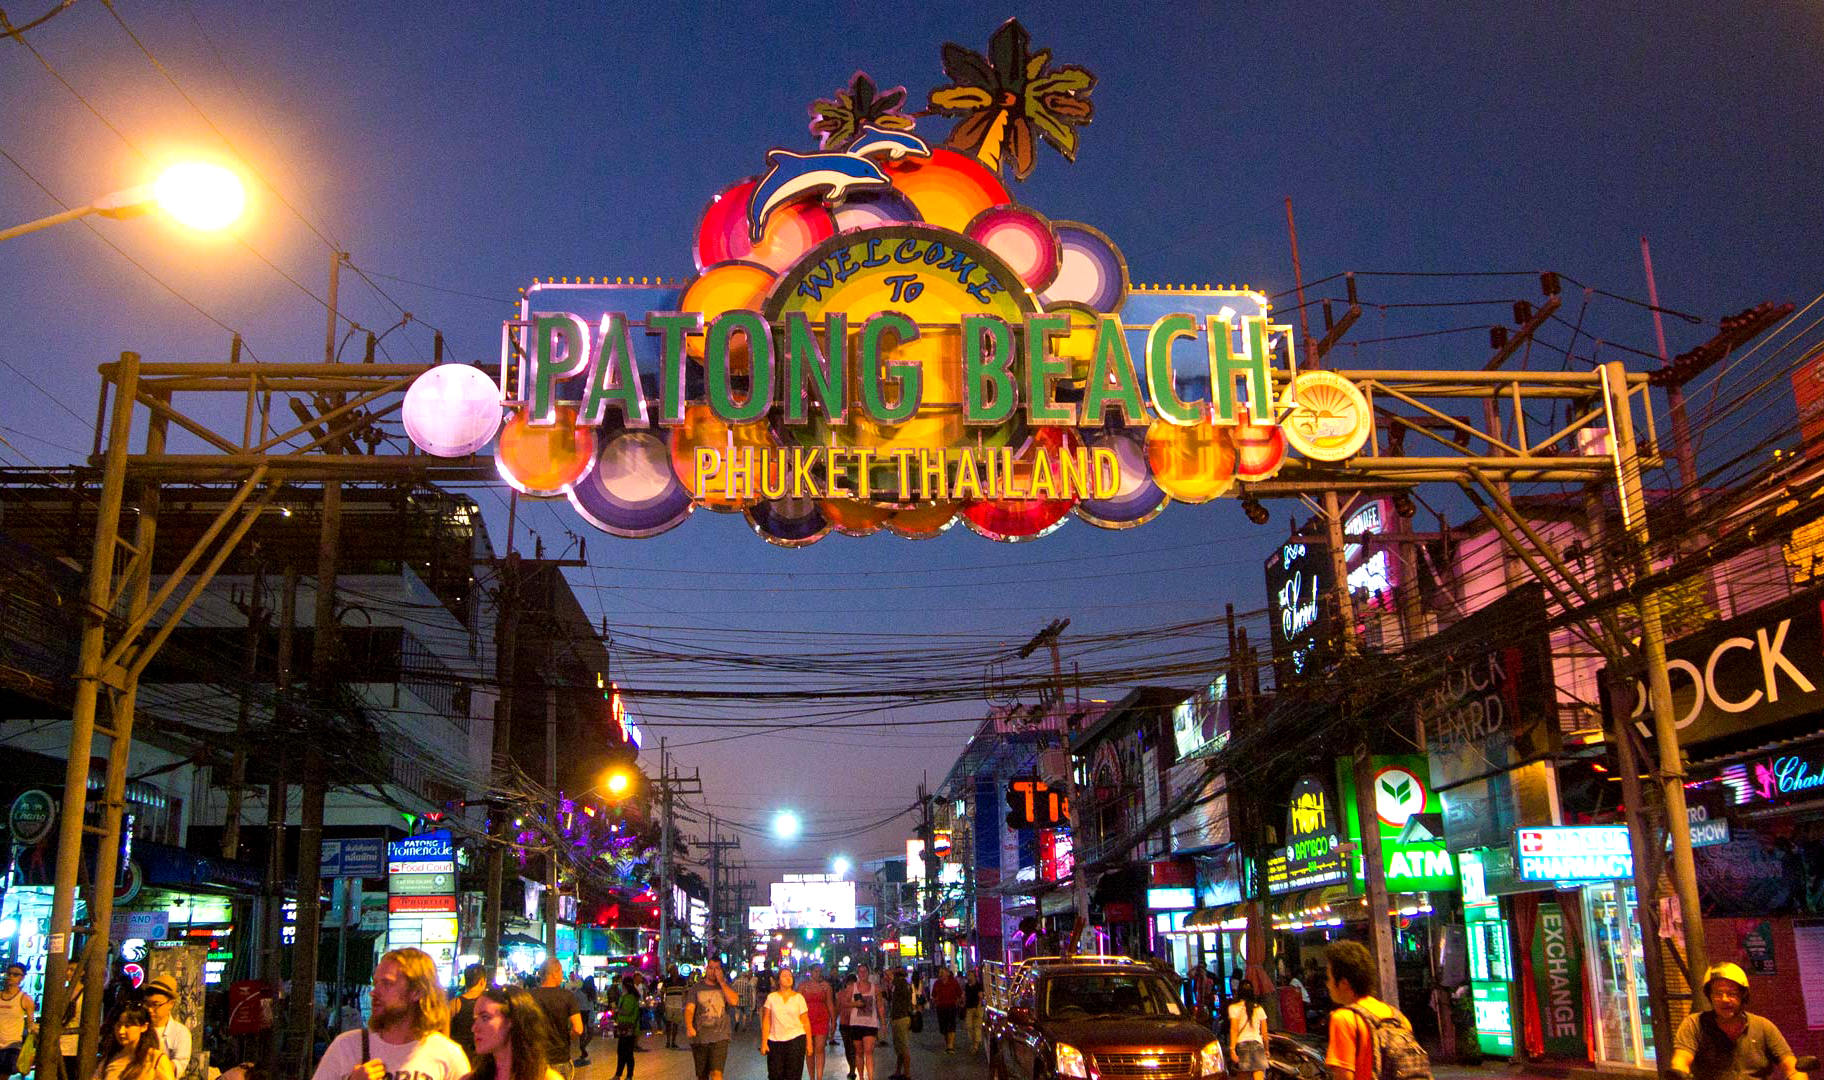 Bangla Road Patong Beach Phuket Island